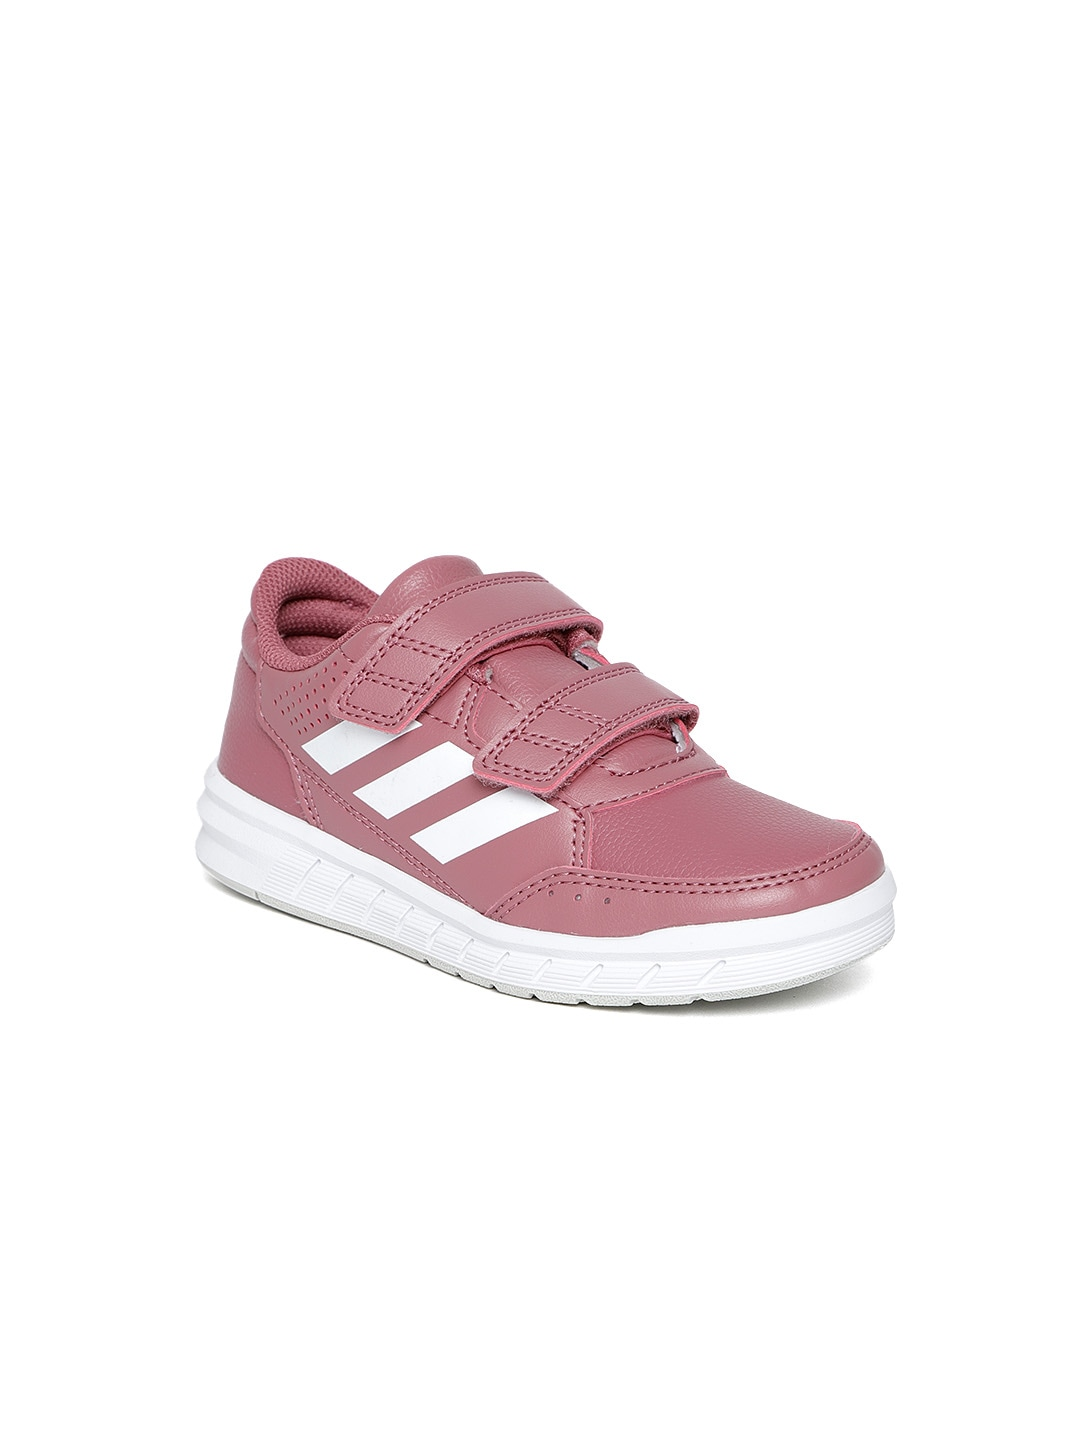 separation shoes 0482d 46ee9 Adidas Velcro Shoes - Buy Adidas Velcro Shoes online in Indi